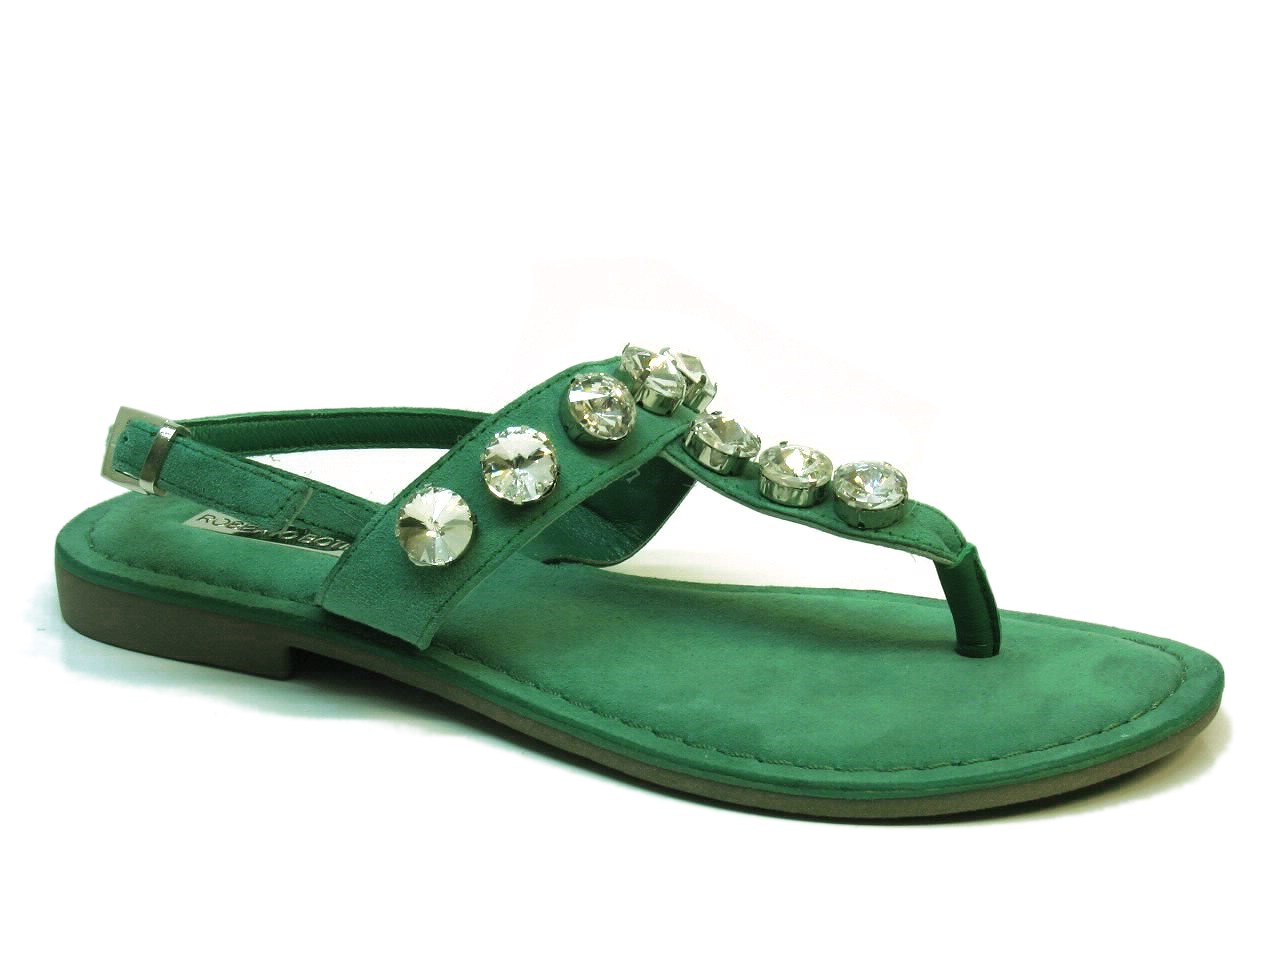 Flat Sandals Roberto Botella - 387 M13187